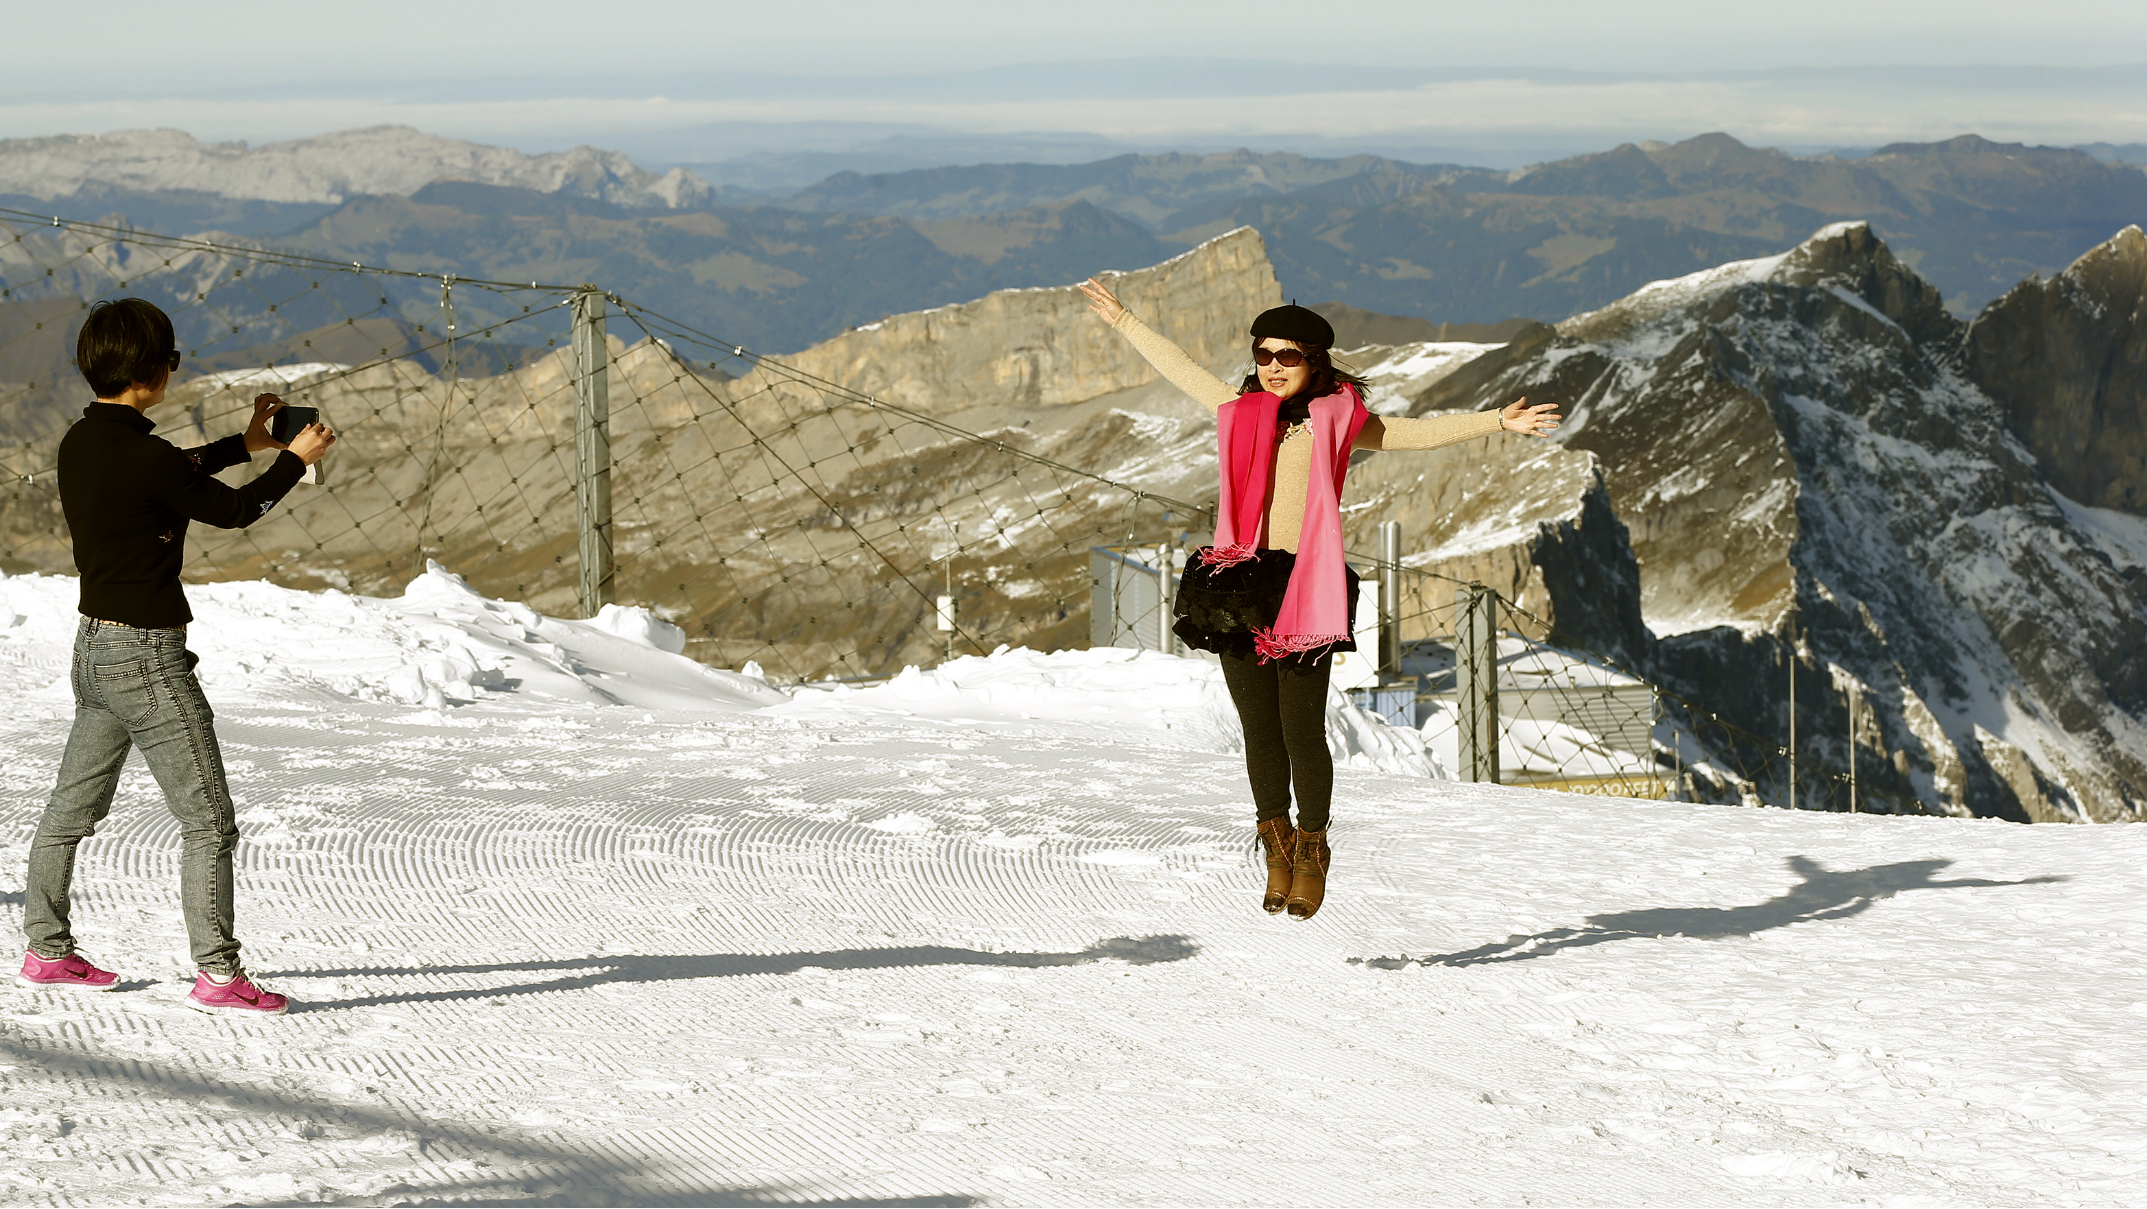 A tourist from China jumps up as she poses for a photograph at the Mount Titlis skiing area (3,238 m/10,623 ft) near the Swiss mountain resort of Engelberg October 19, 2013. REUTERS/Arnd Wiegmann